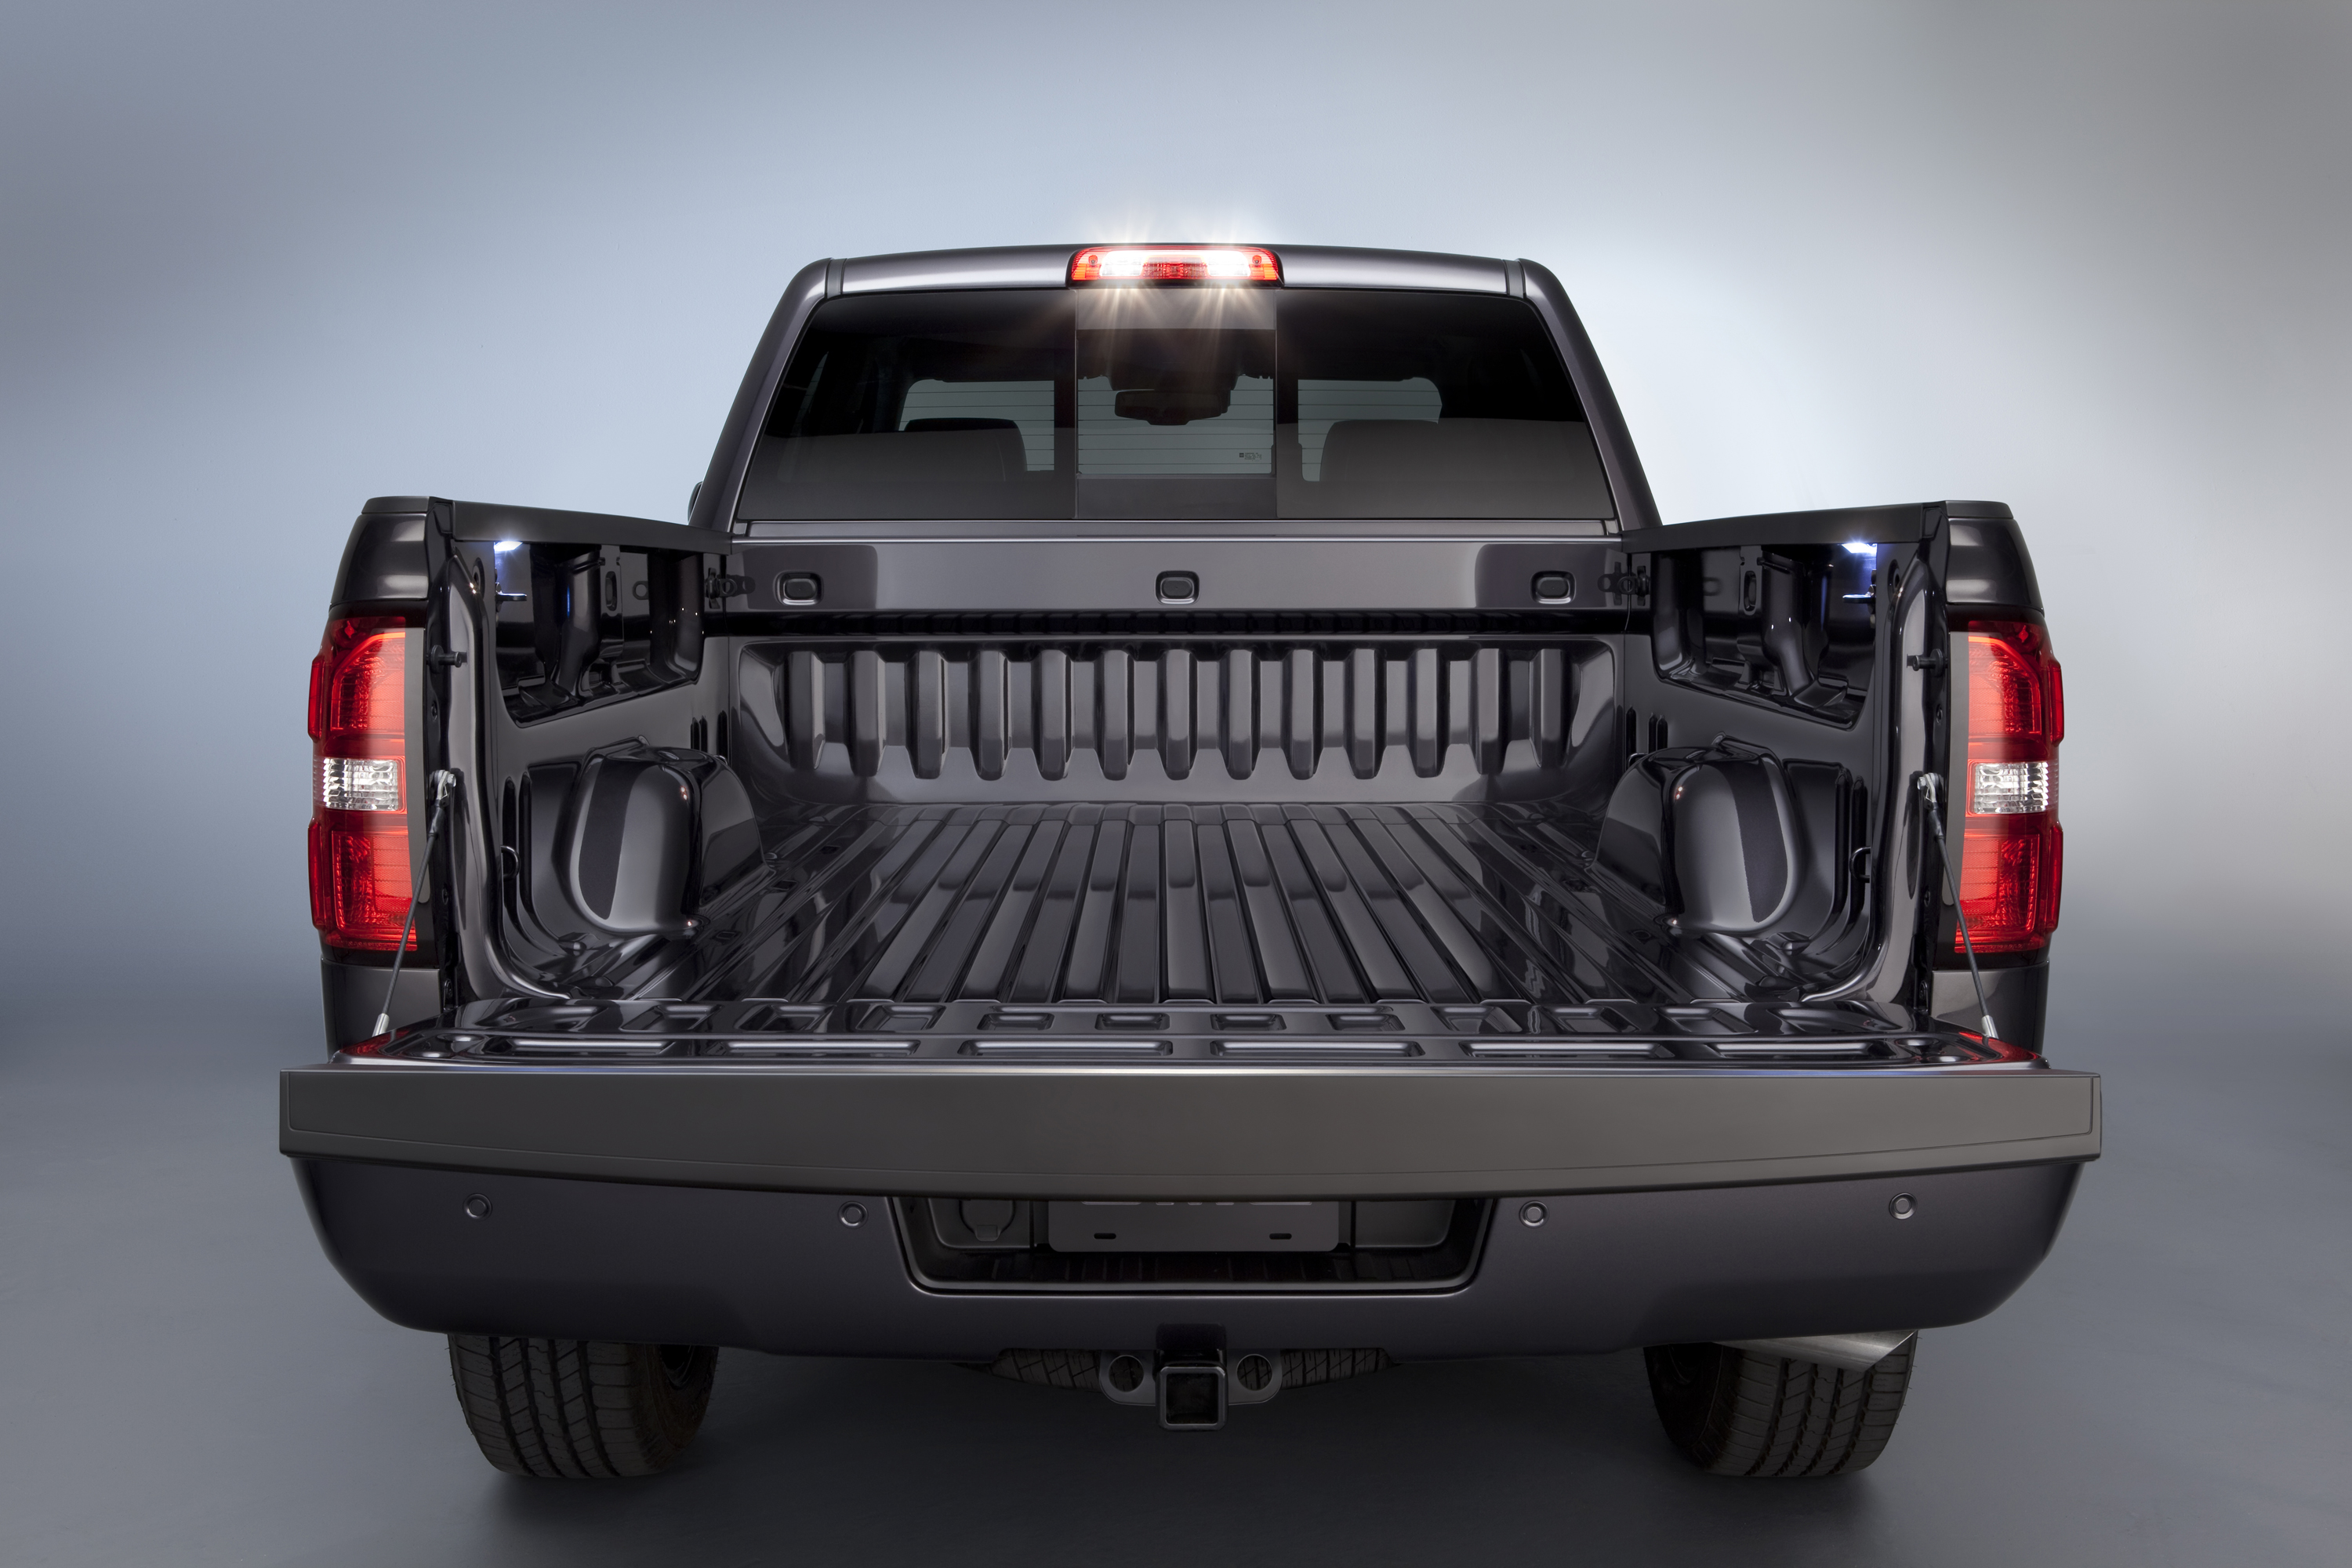 skirted cfm wh sale beds for norstar truck gmc whmain bed